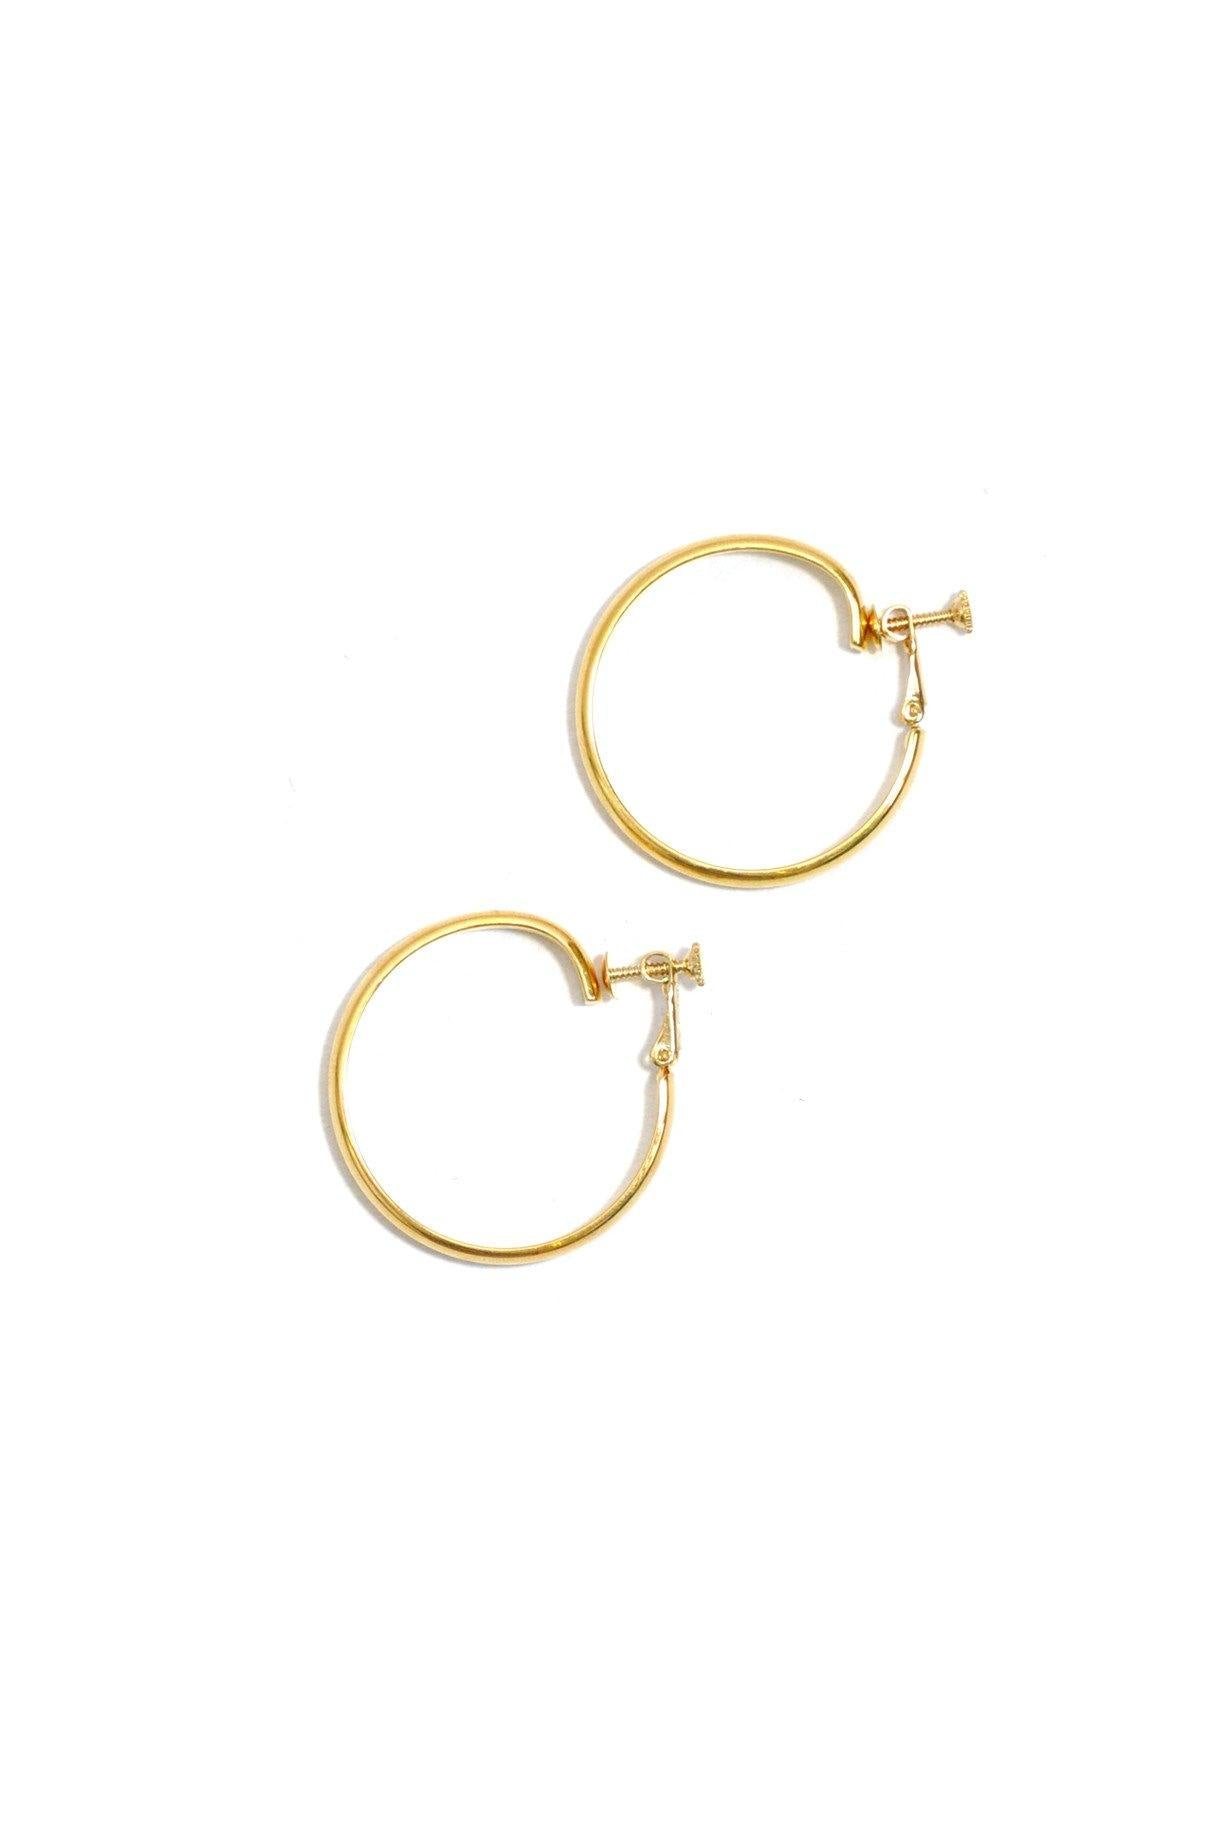 70's__Napier__Gold Hoop Clip-On Earrings